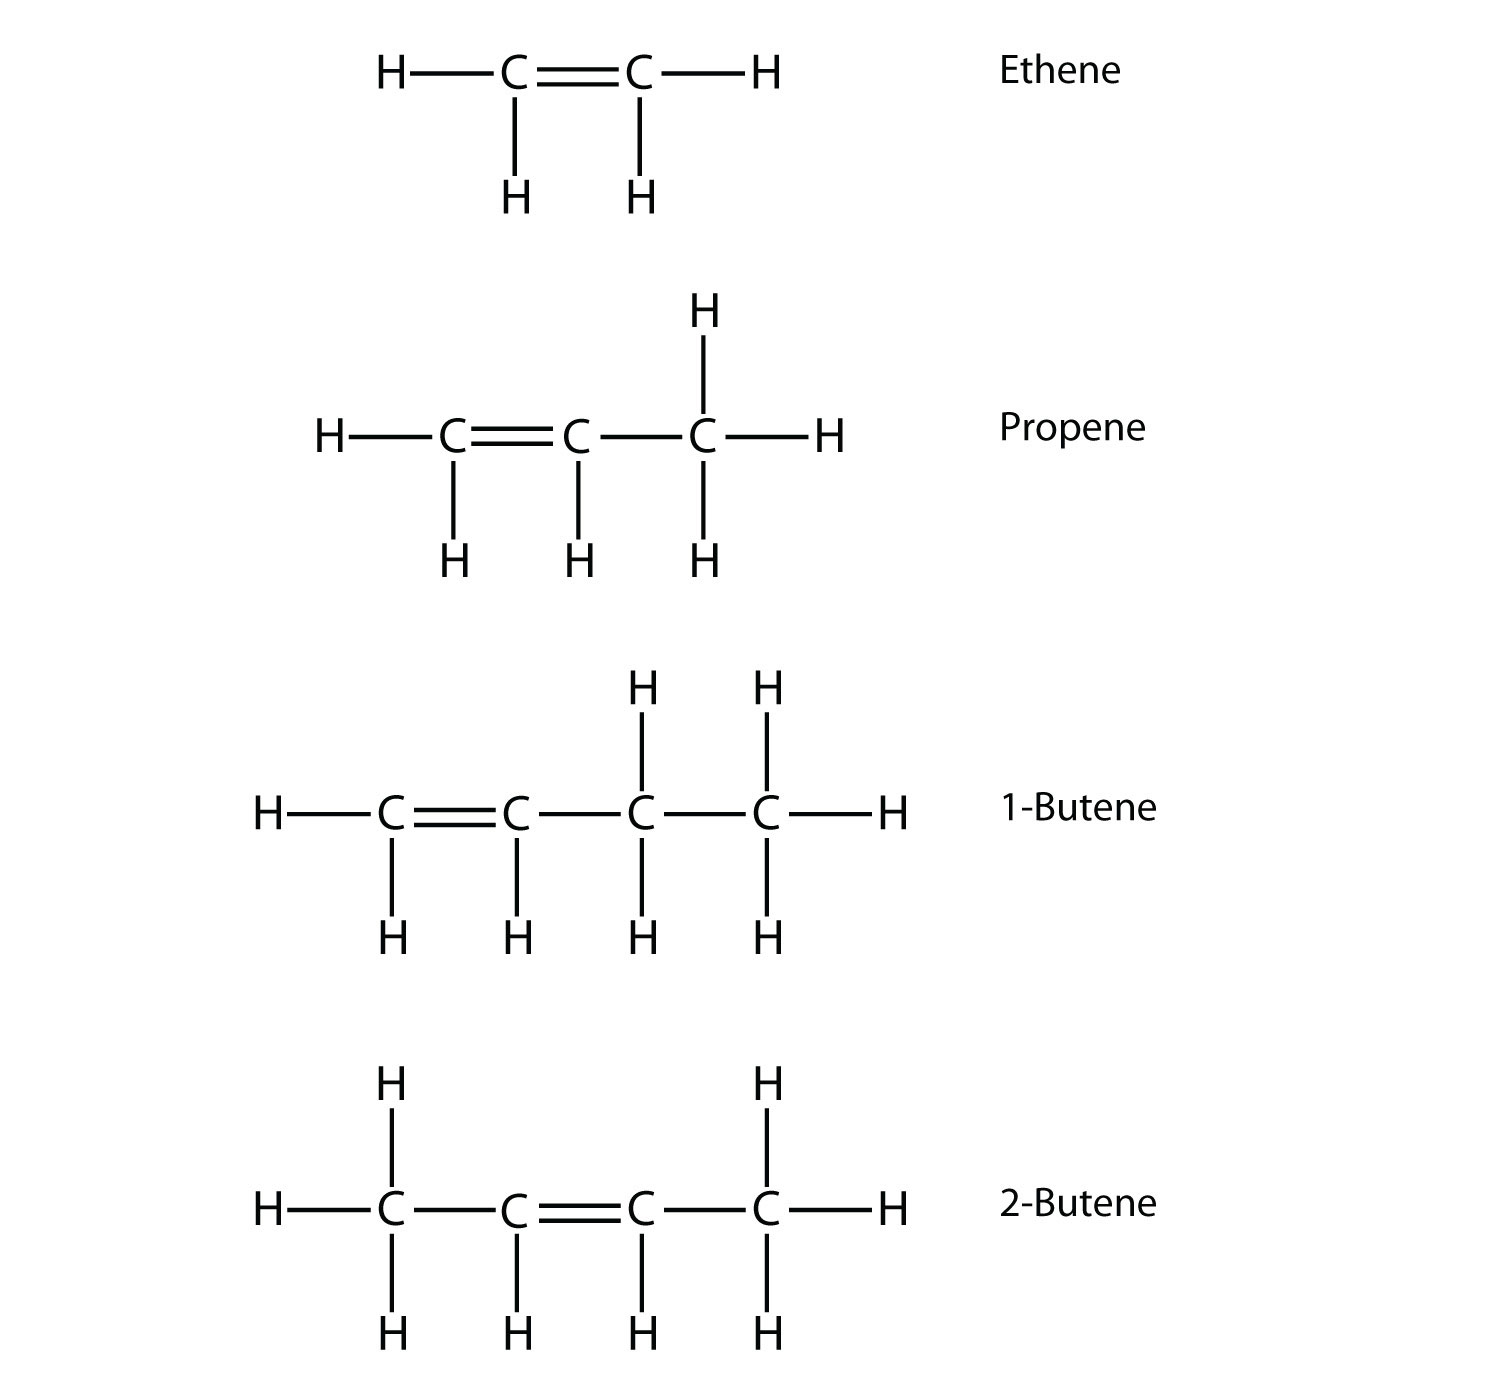 hight resolution of name and draw the structural formulas for the four smallest alkenes